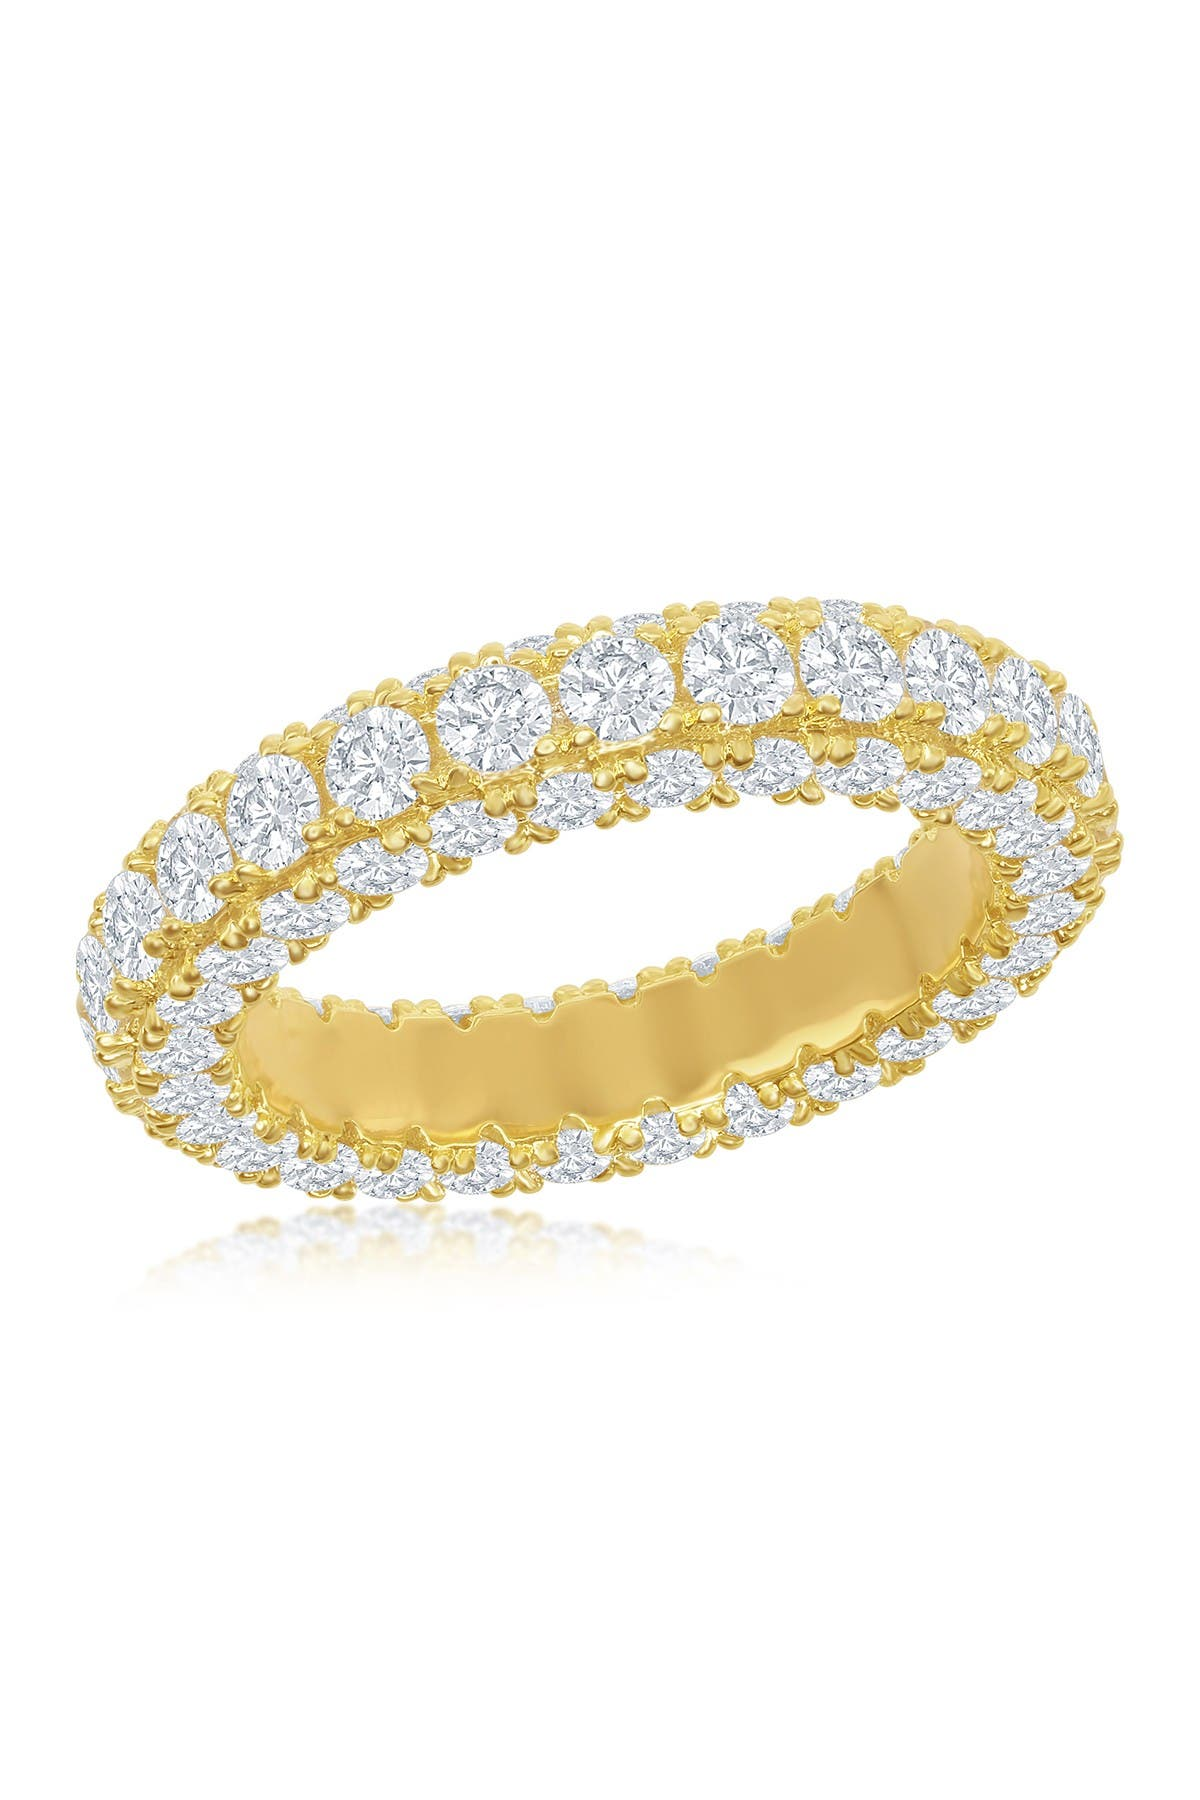 Image of Simona Jewelry 14K Yellow Gold Plated Sterling Silver Pave CZ Eternity Band Ring